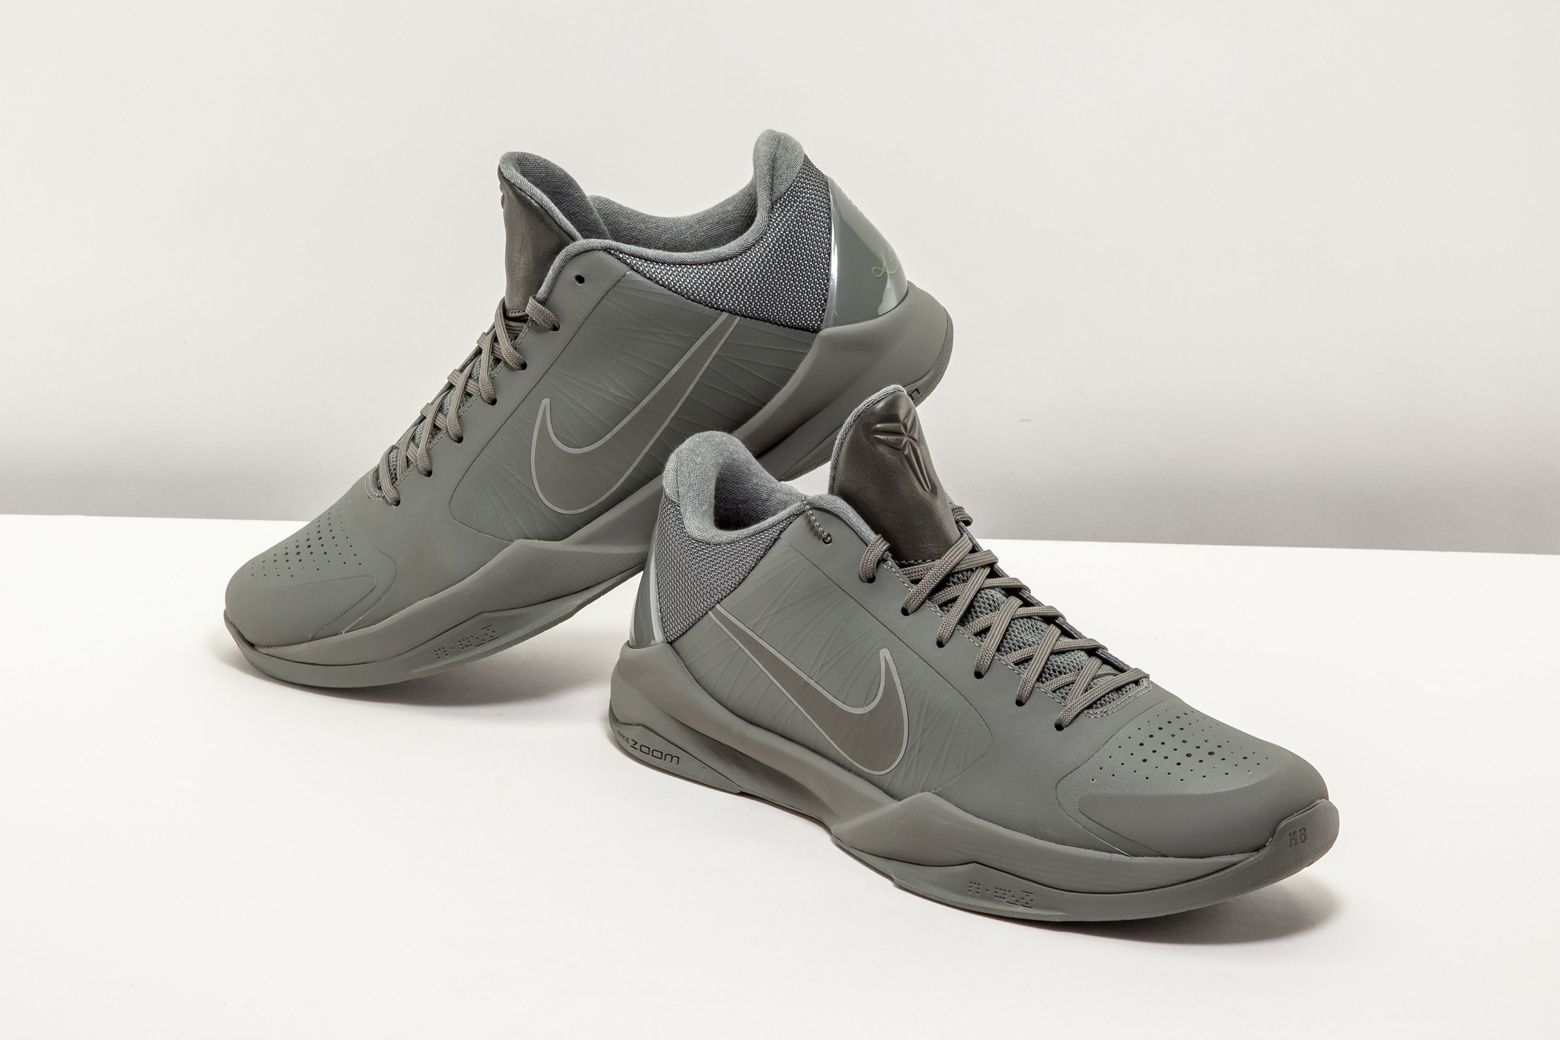 5730b0b43e0d ... get the fade to black collection sports each of kobe bryants signature  shoes including this matte